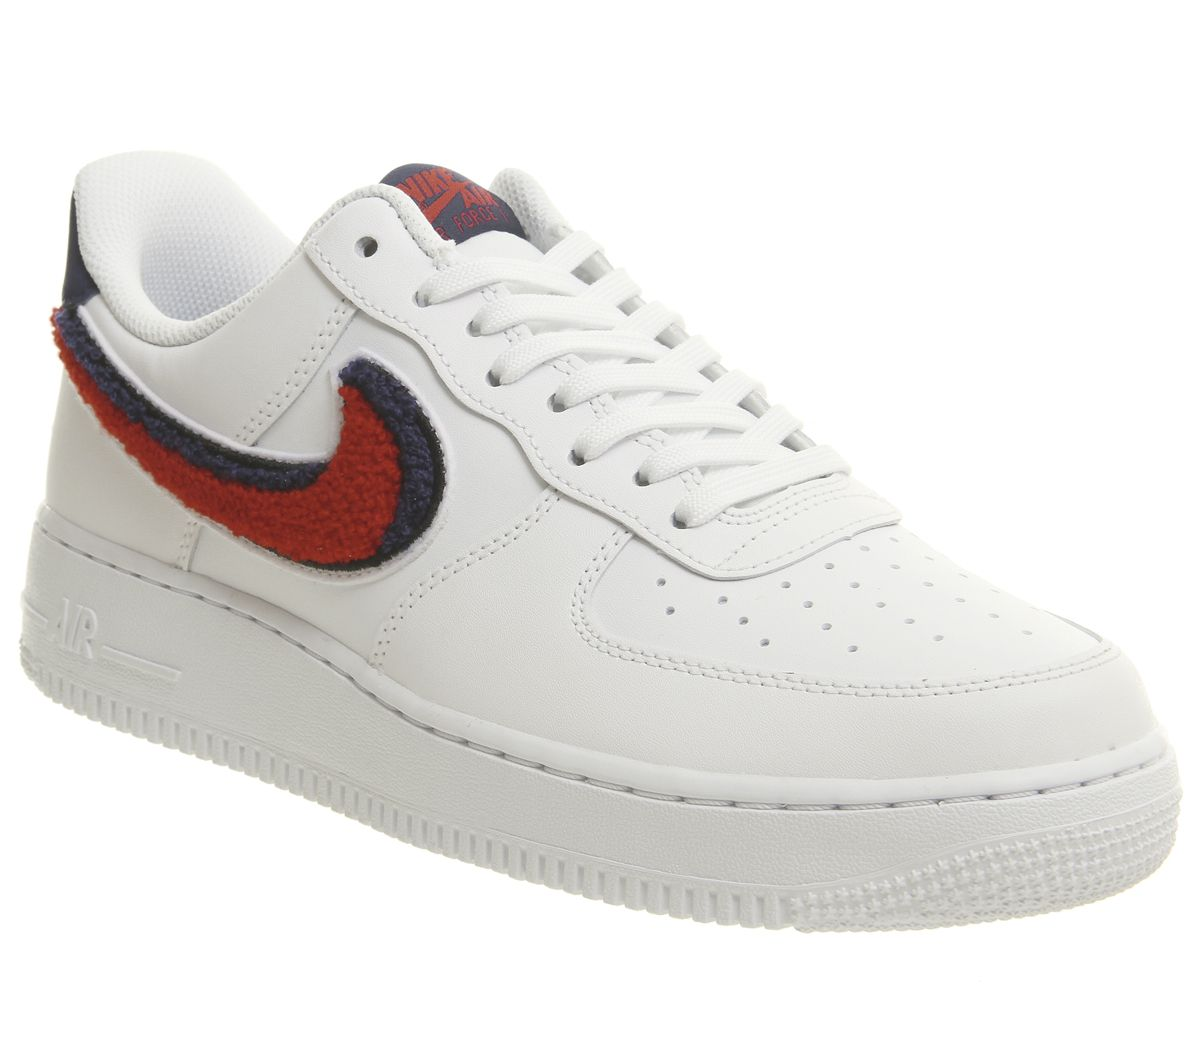 sports shoes 7dc64 fbc54 Nike Air Force 1 07 Trainers White University Red - His trainers